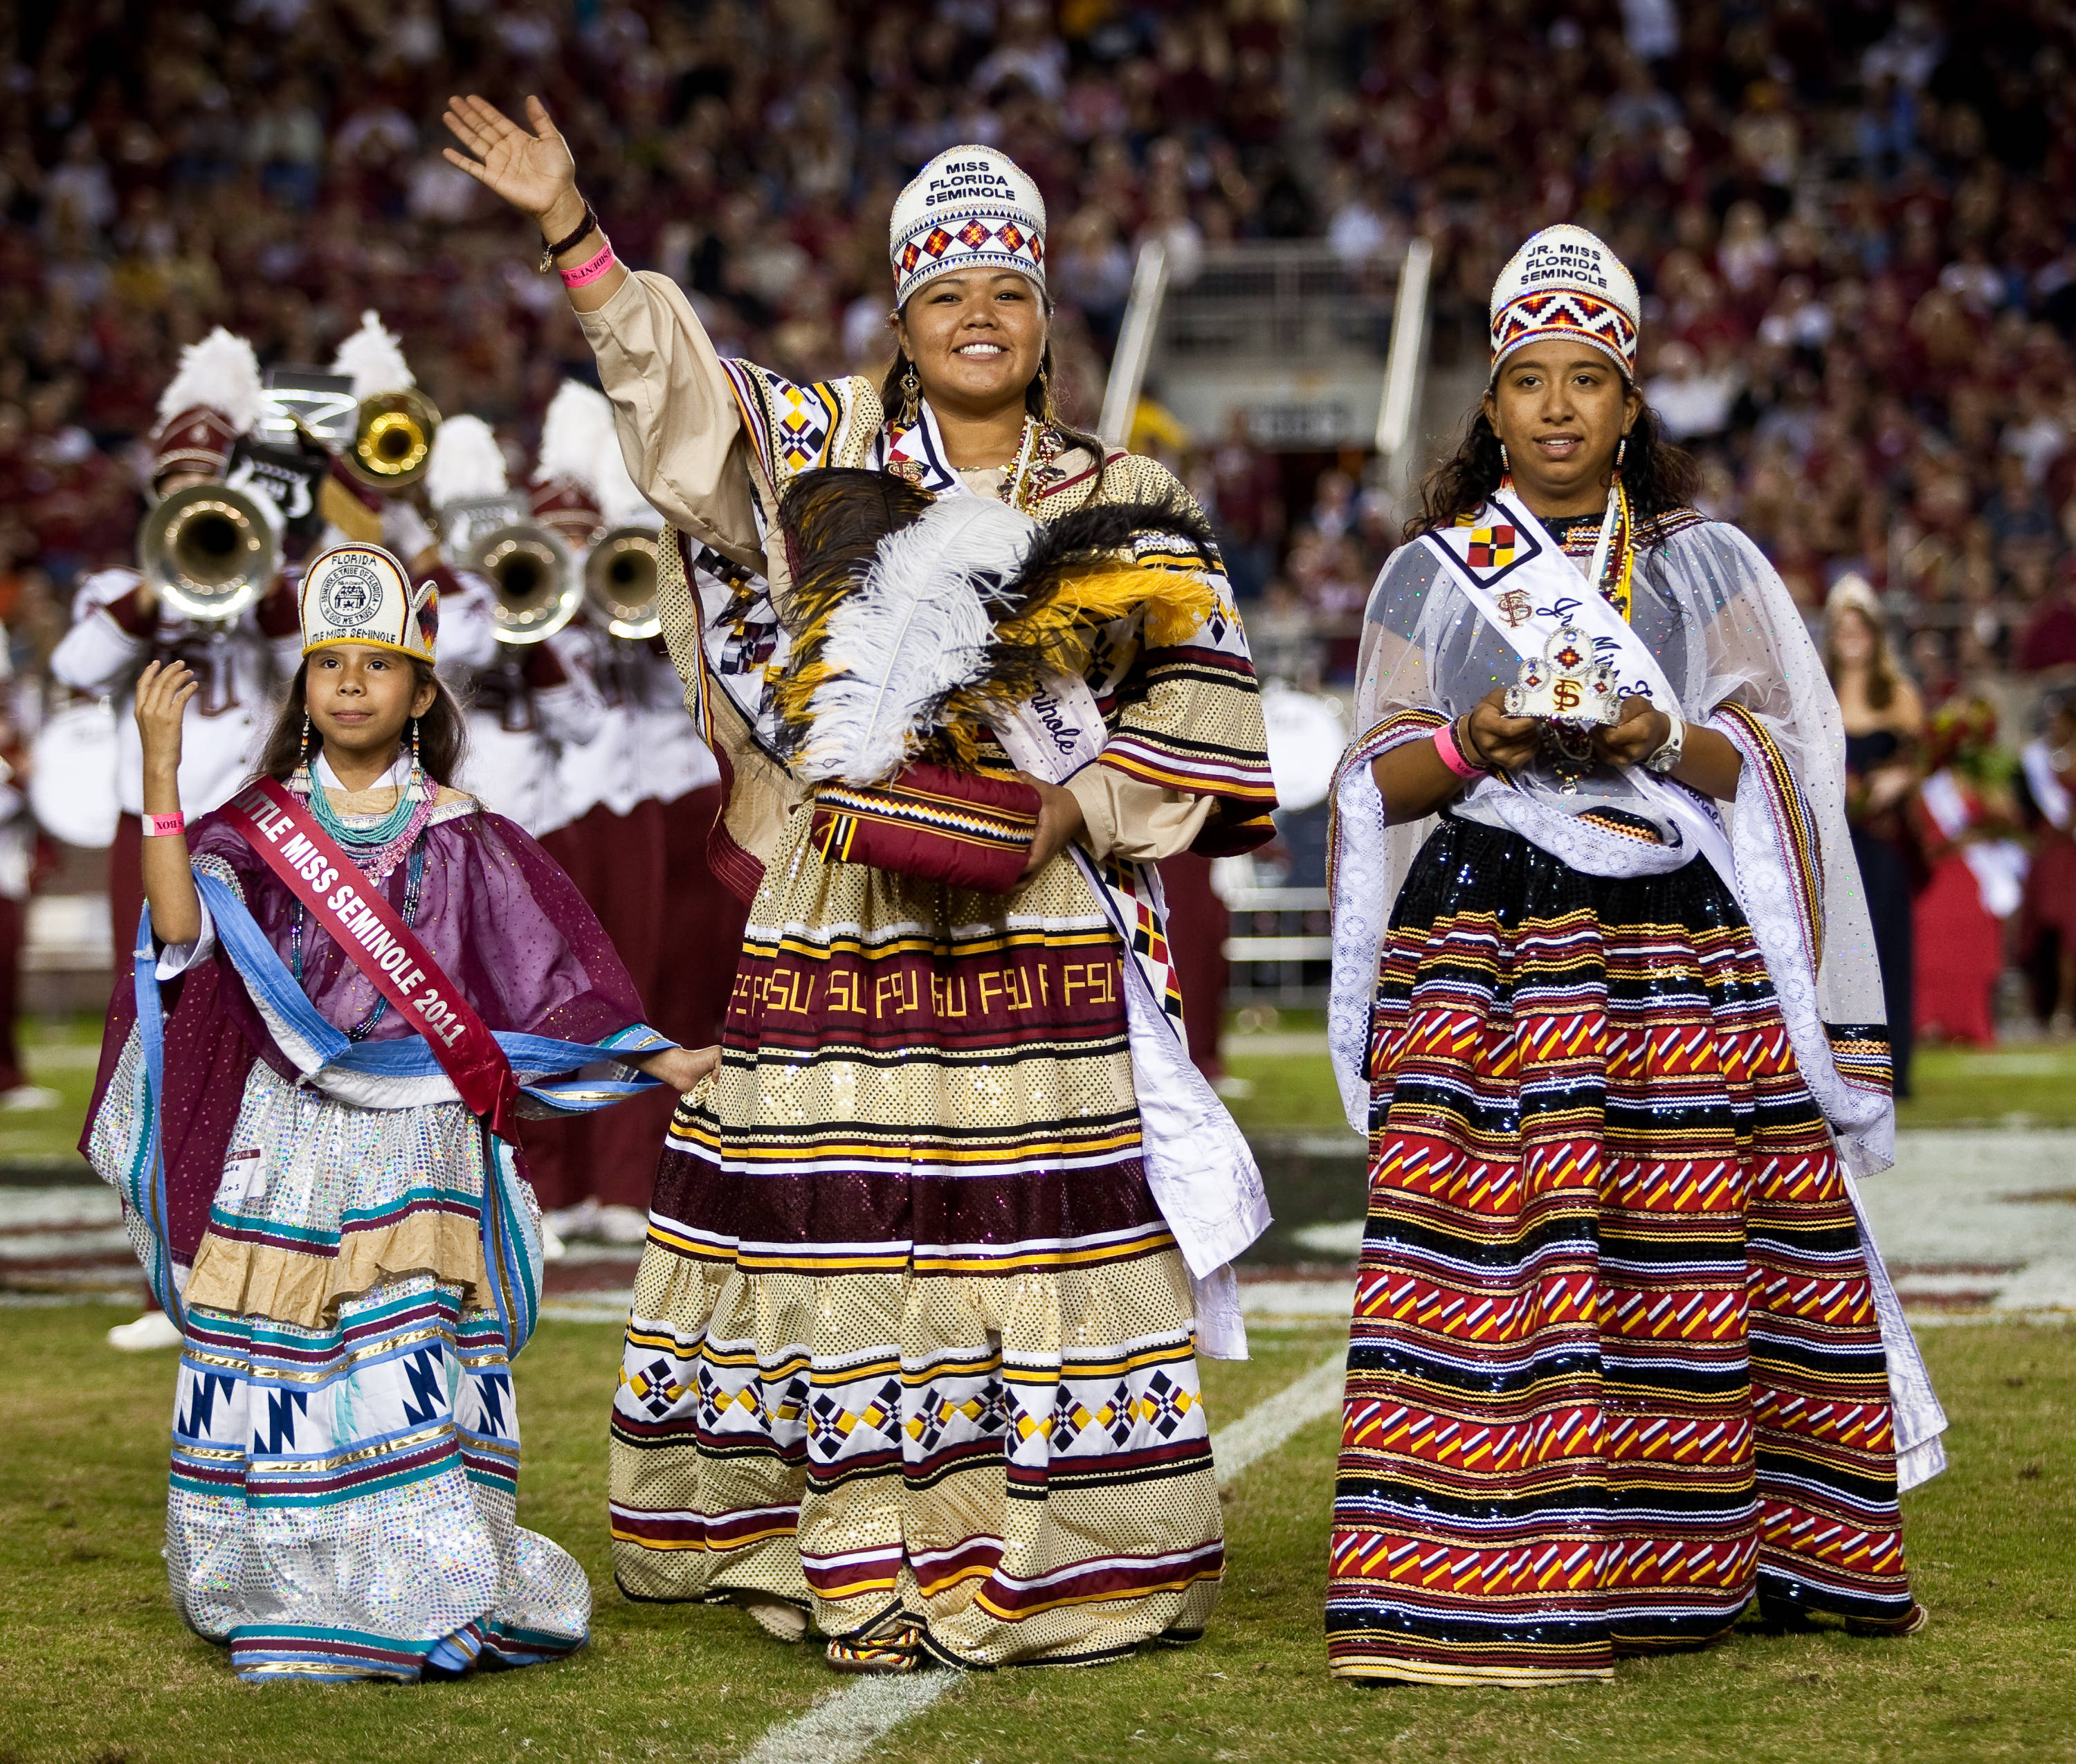 Members of the Seminole Tribe during homecoming